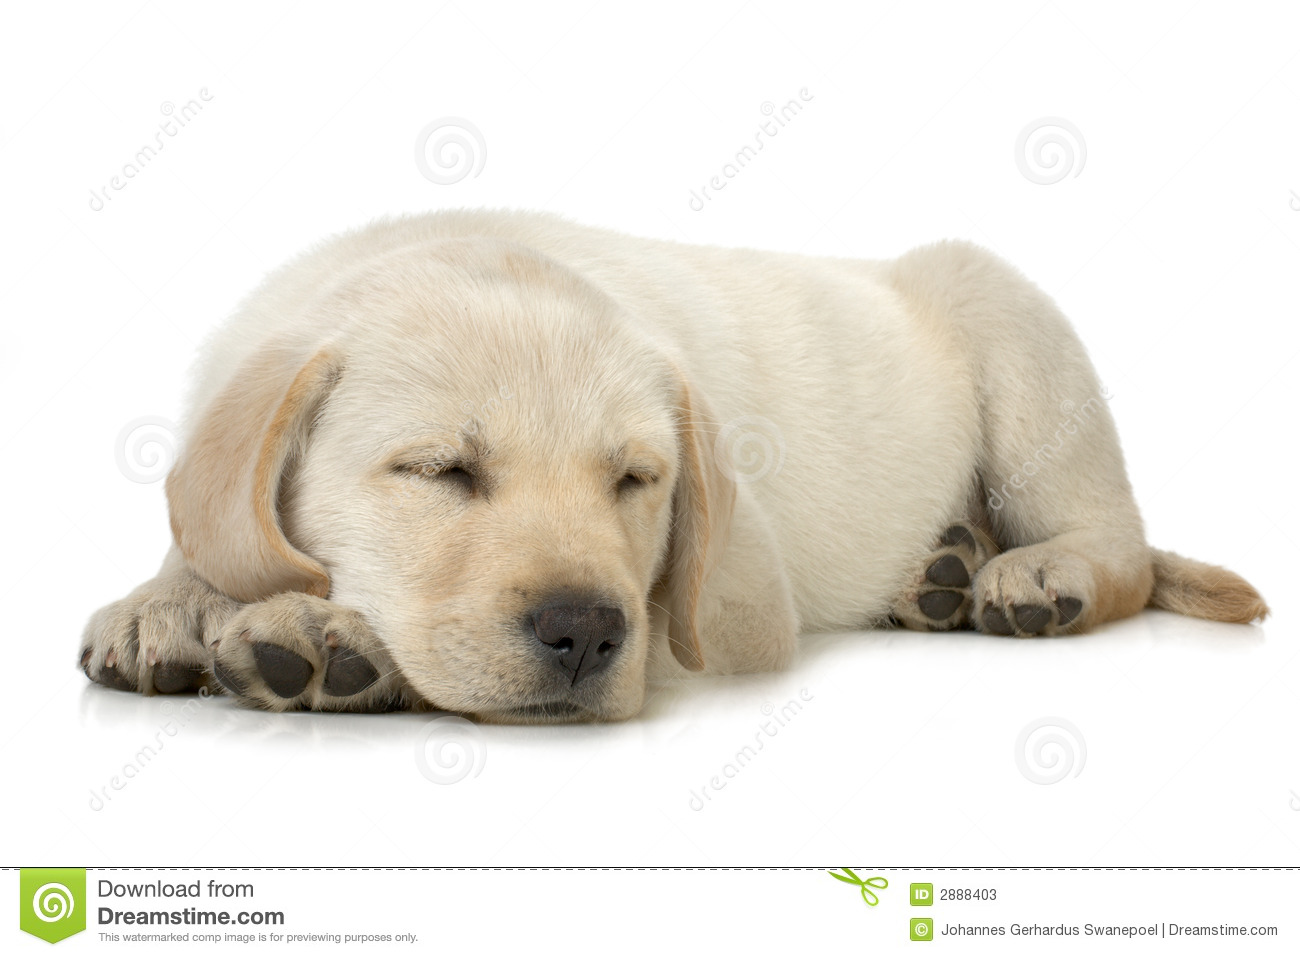 Cartoon dog stock photos images amp pictures shutterstock - Sleepy White Dog Stock Photos Images Amp Pictures Shutterstock Cartoon